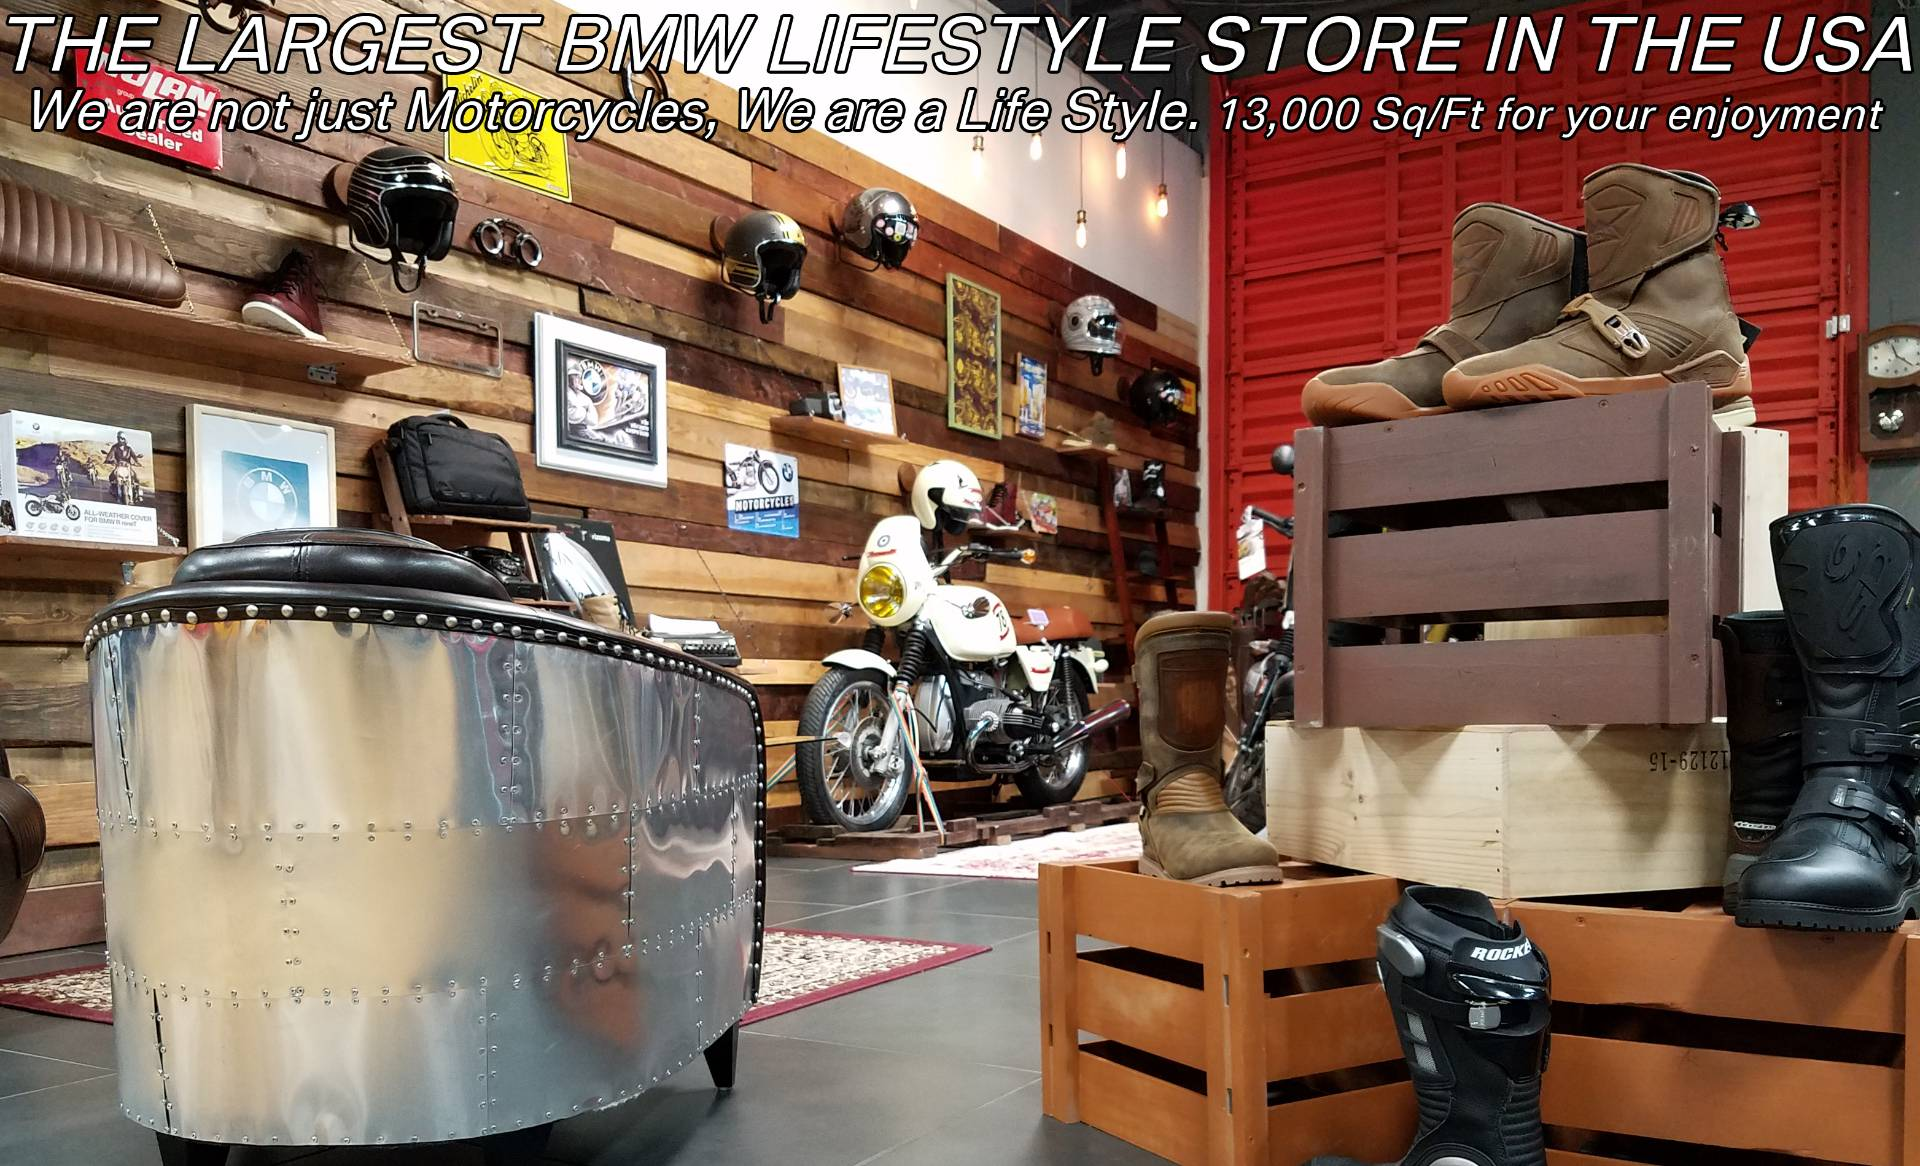 New 2019 BMW R nine T Scrambler for sale, BMW Scrambler for sale, BMW Motorcycle Scrambler, Scrambler, BMW Motorcycles of Miami, Motorcycles of Miami, Motorcycles Miami, New Motorcycles, Used Motorcycles, pre-owned. #BMWMotorcyclesOfMiami #MotorcyclesOfMiami. - Photo 37